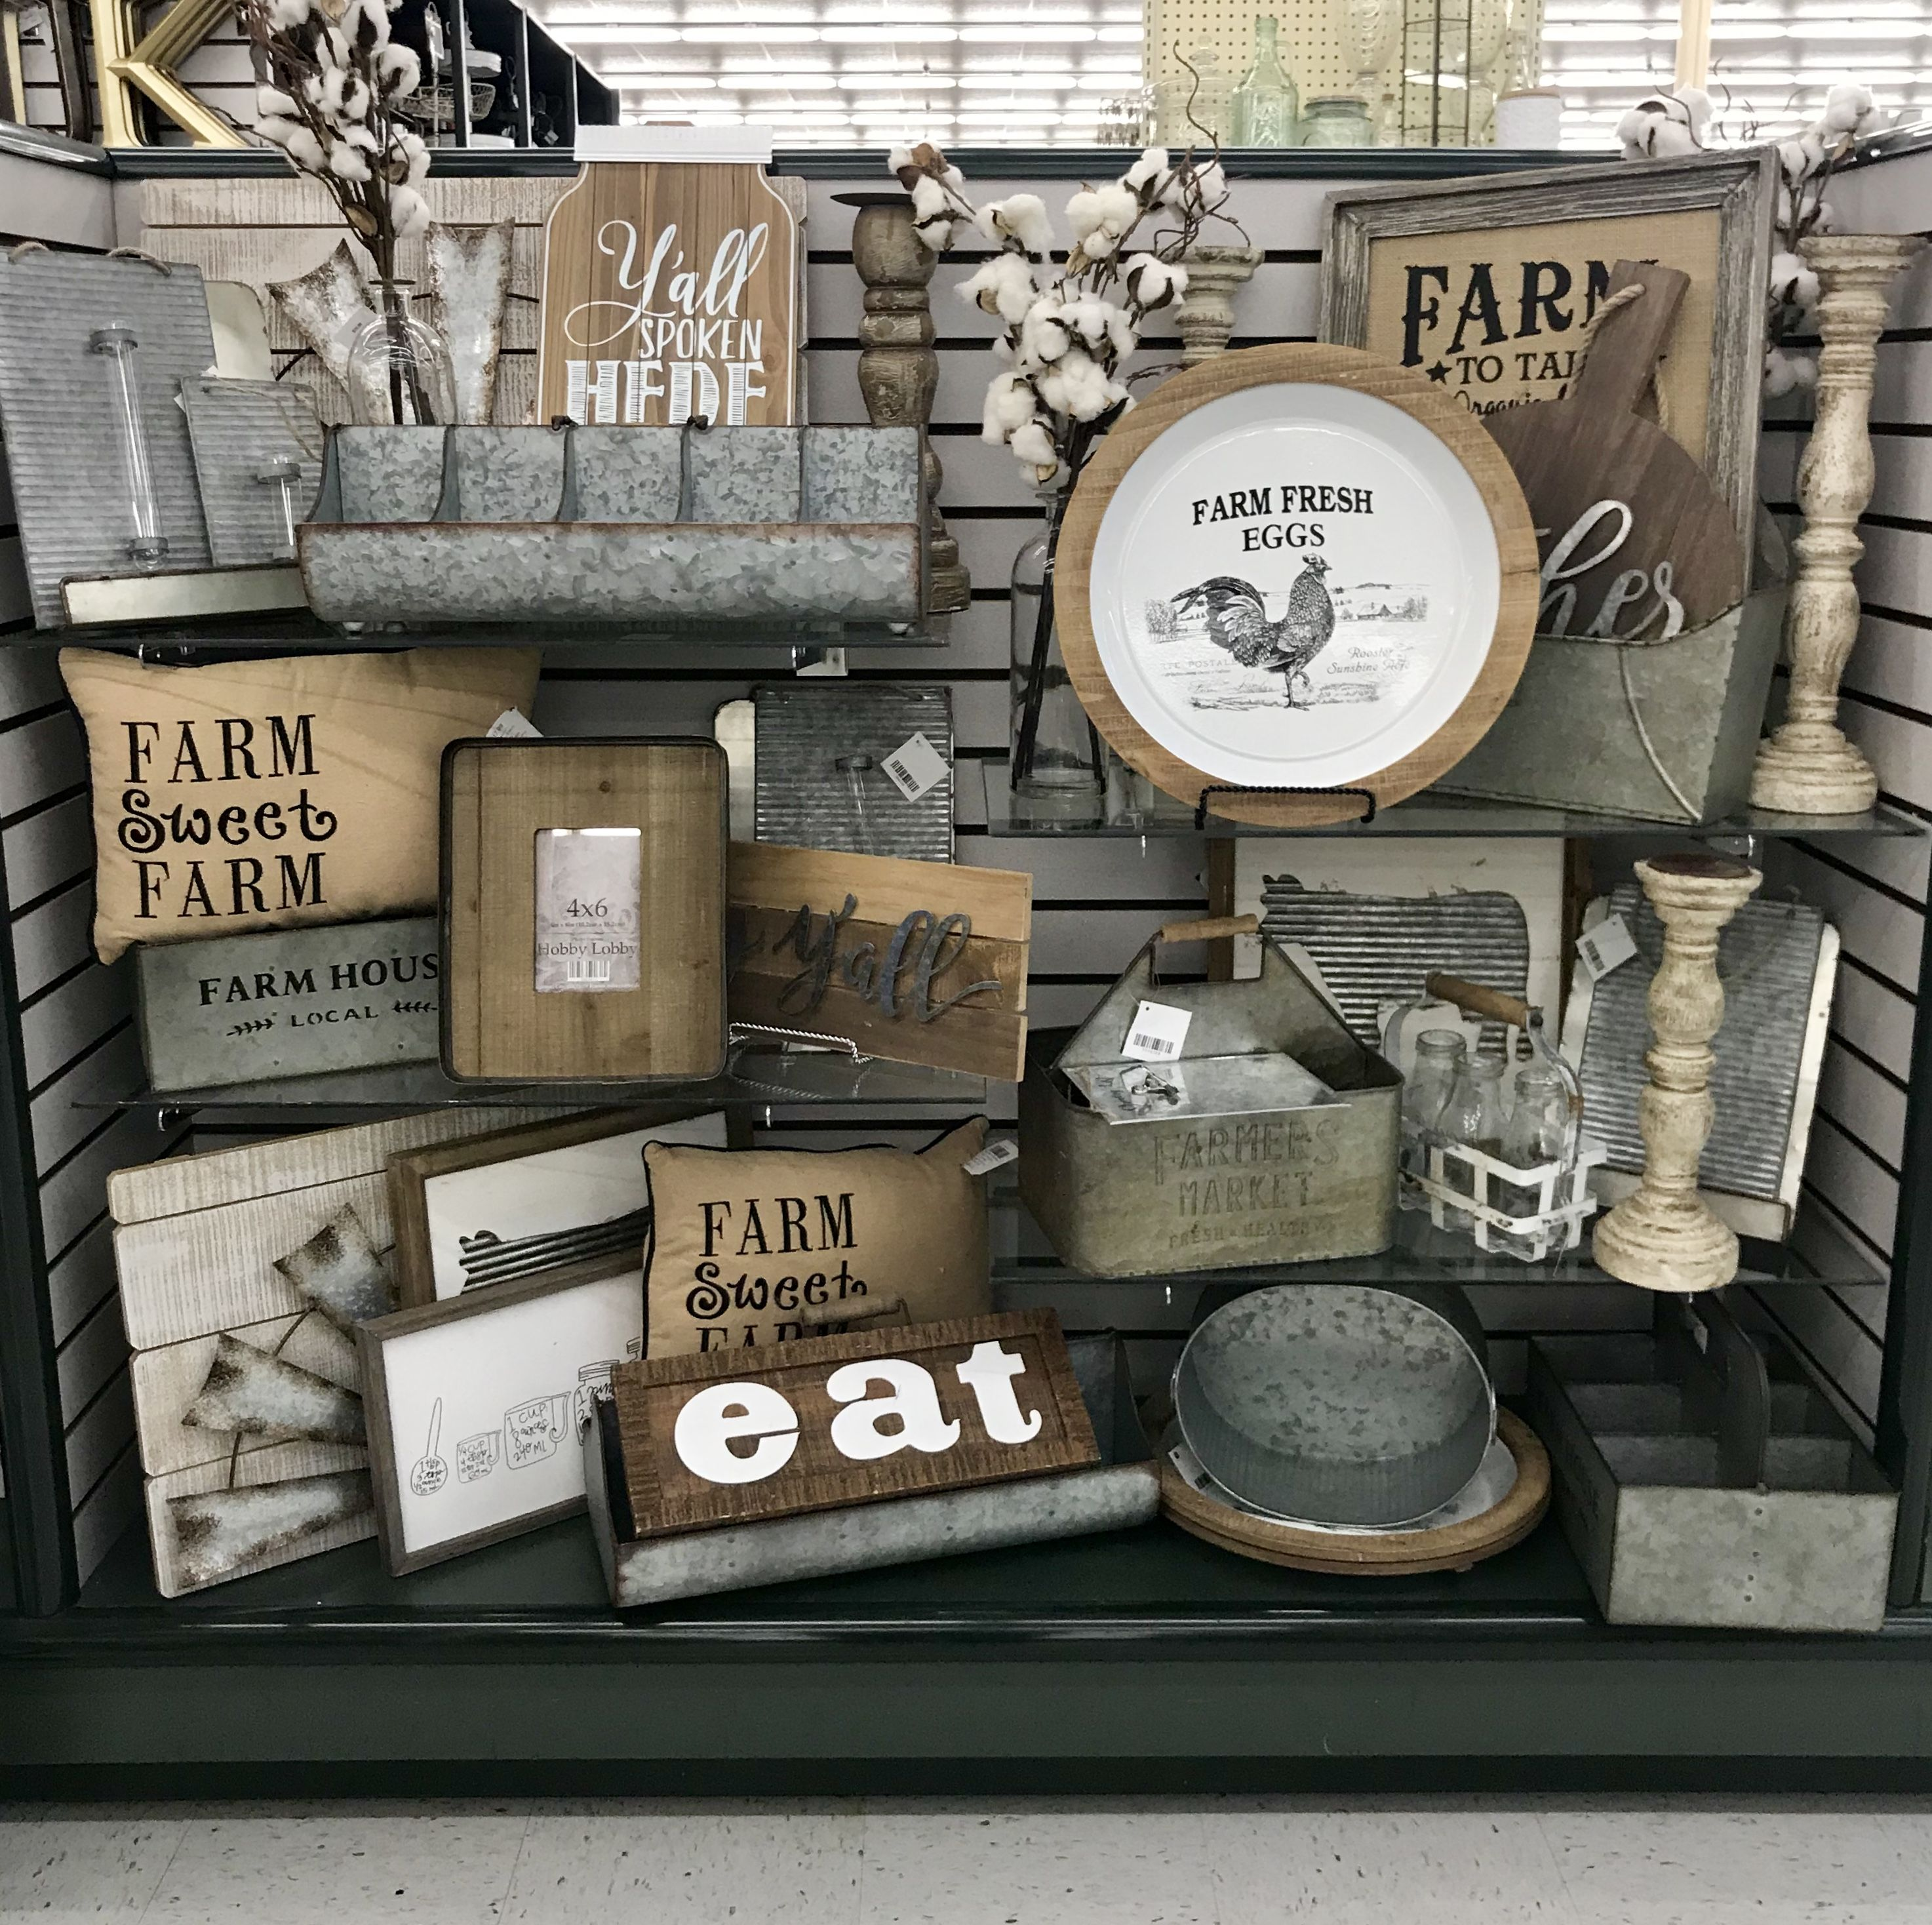 Hobby lobby merchandising table displays work Hobby